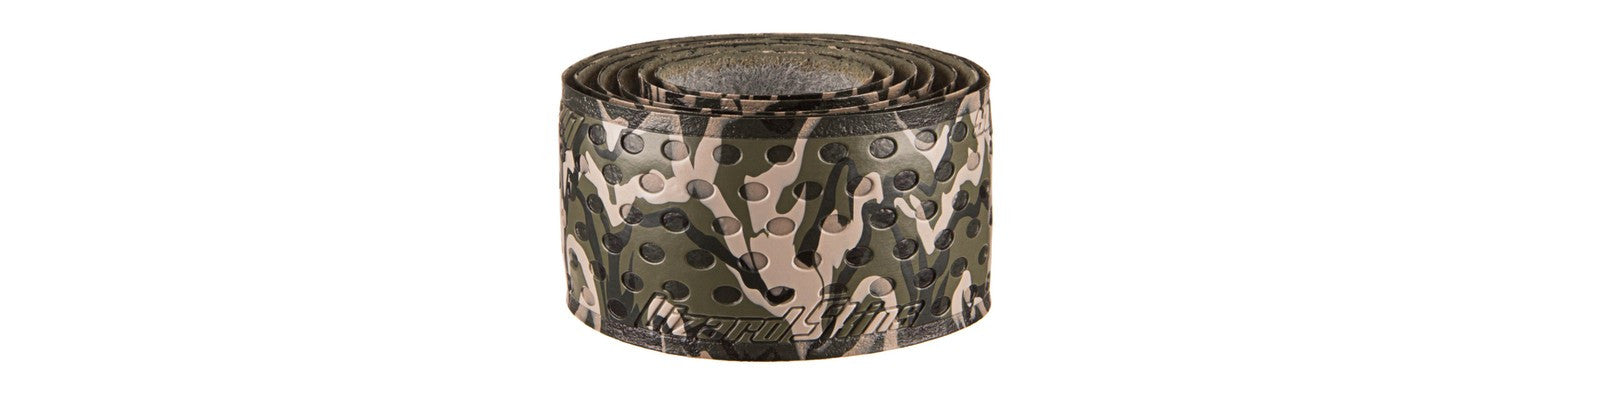 Lizard Skin Bat Wrap - Camo